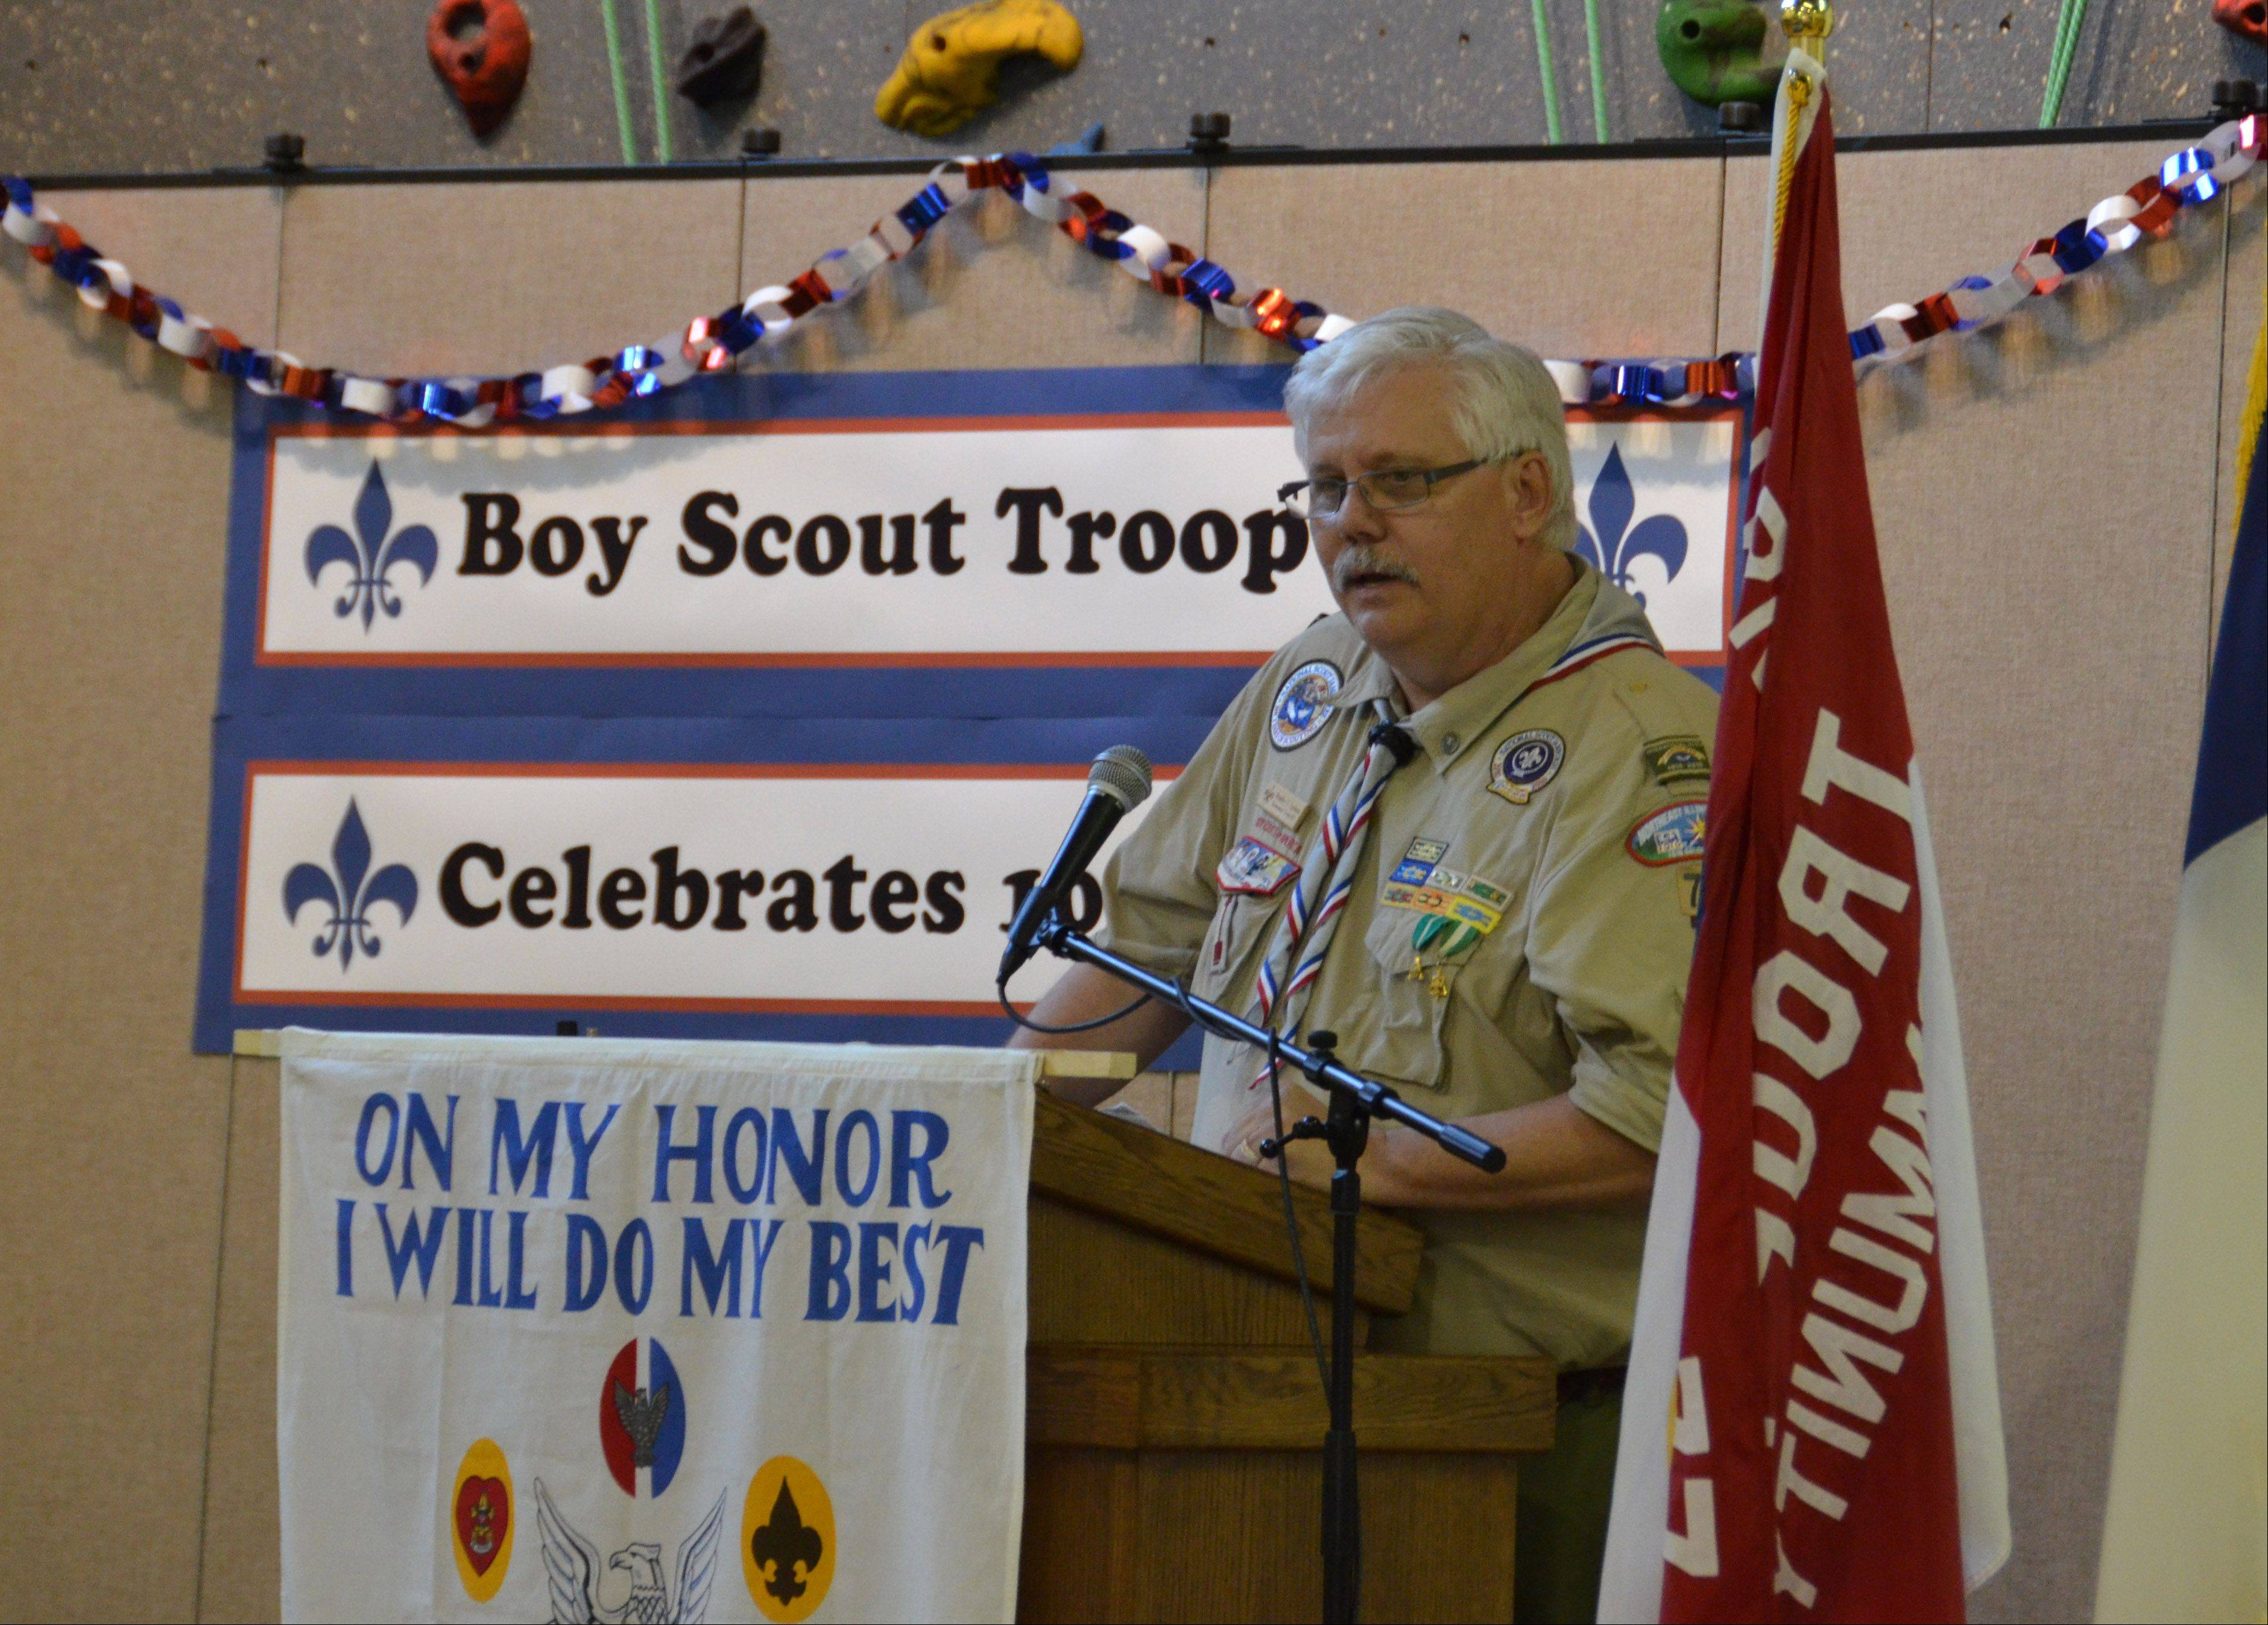 Gurnee Boy Scout Troop 677 celebrates their 100 year anniversary and the troop's scoutmaster Brad Carlson says a few words during the ceremony.